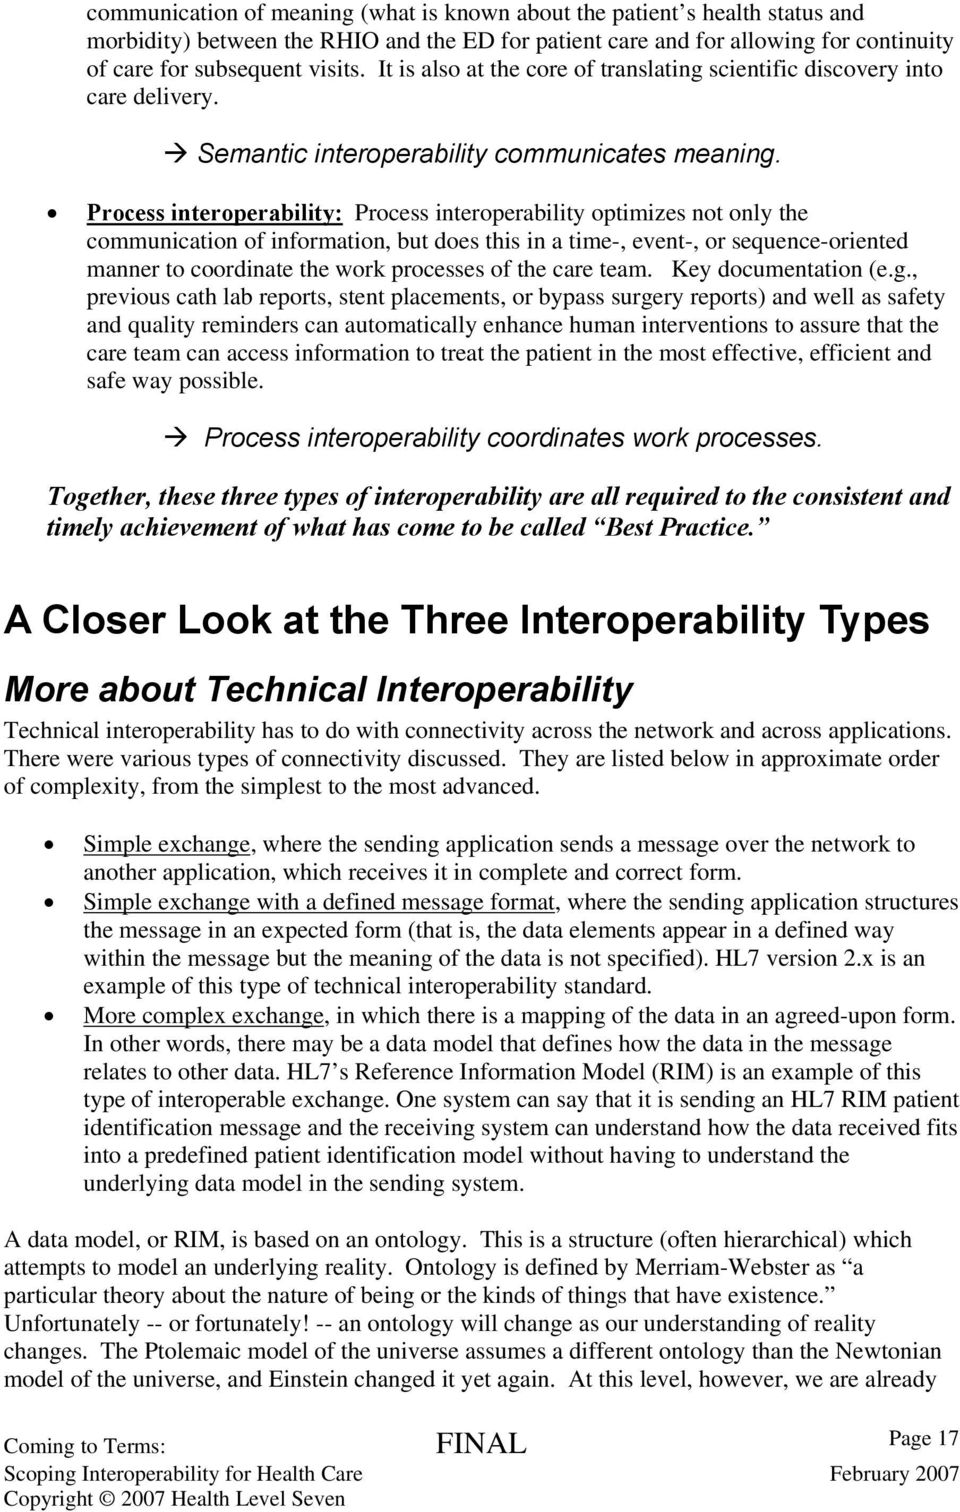 Process interoperability: Process interoperability optimizes not only the communication of information, but does this in a time-, event-, or sequence-oriented manner to coordinate the work processes